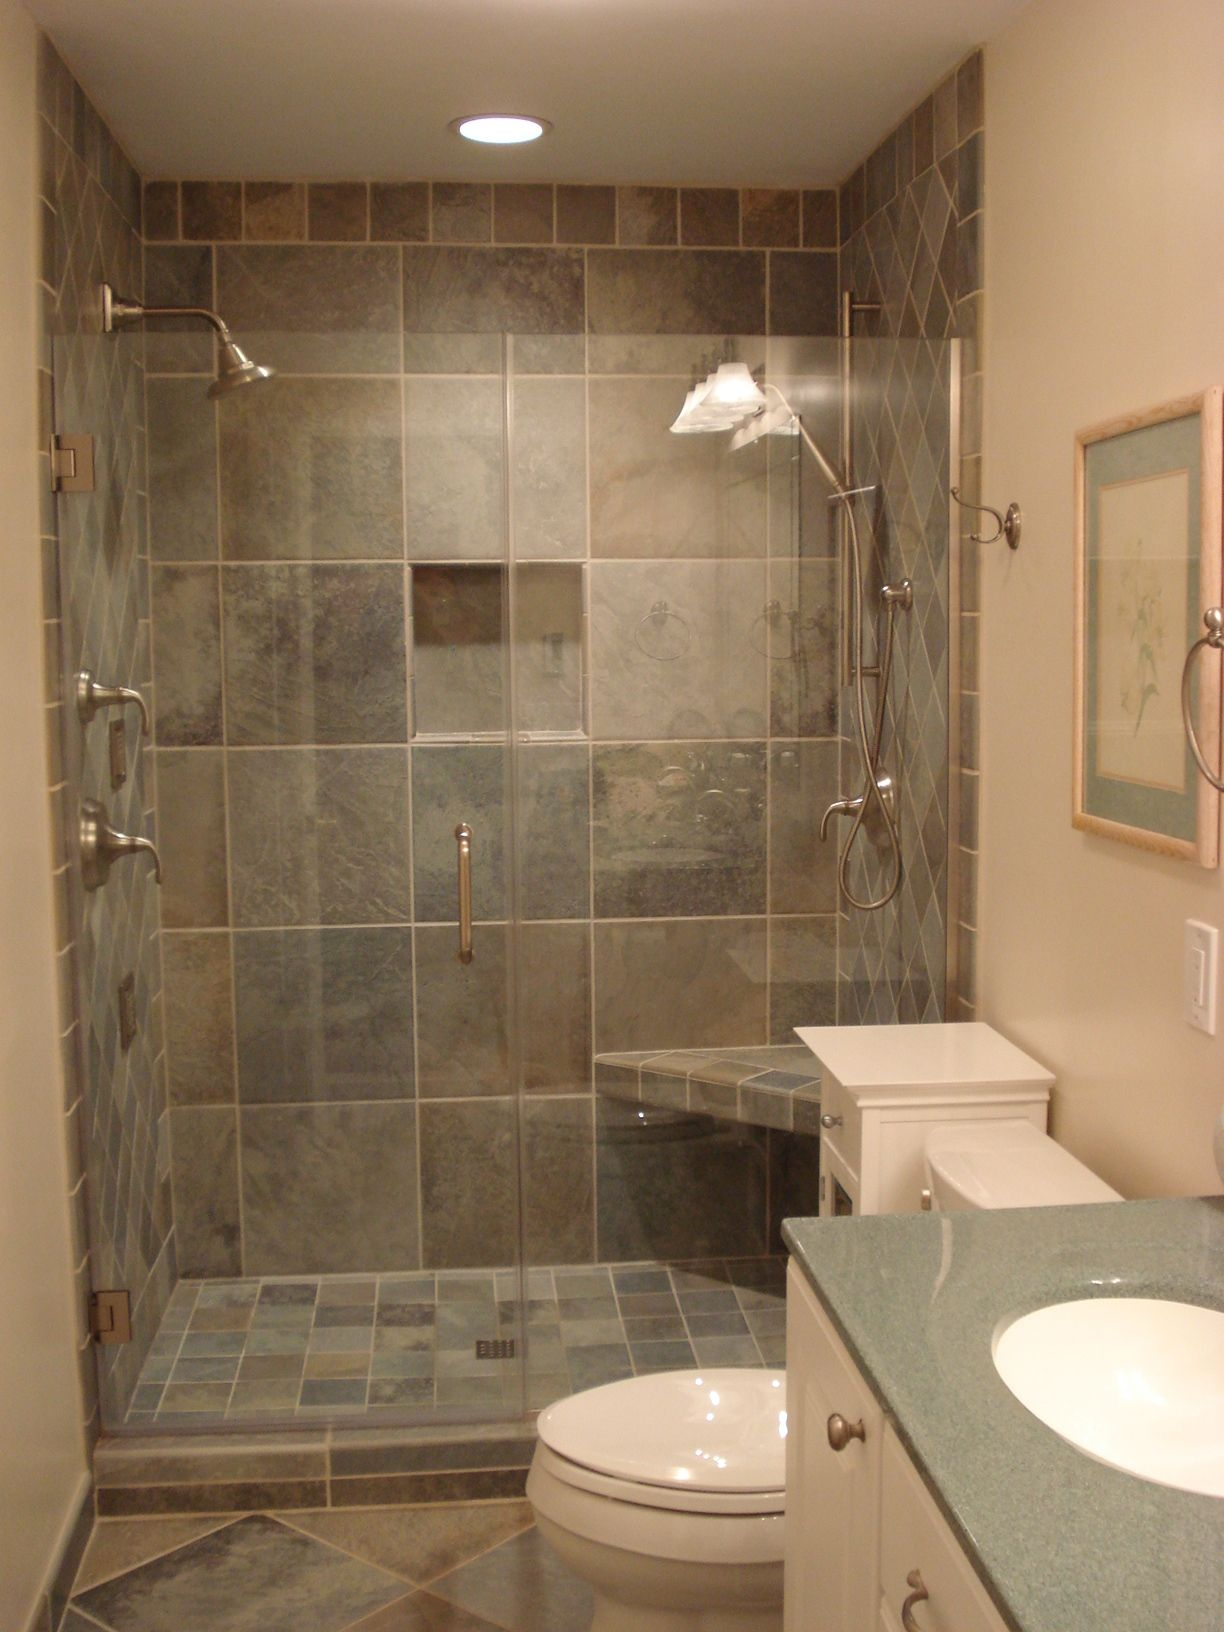 It Is Common For A Small Room To Be Designed In White Interior Color - Small-bathroom-remodels